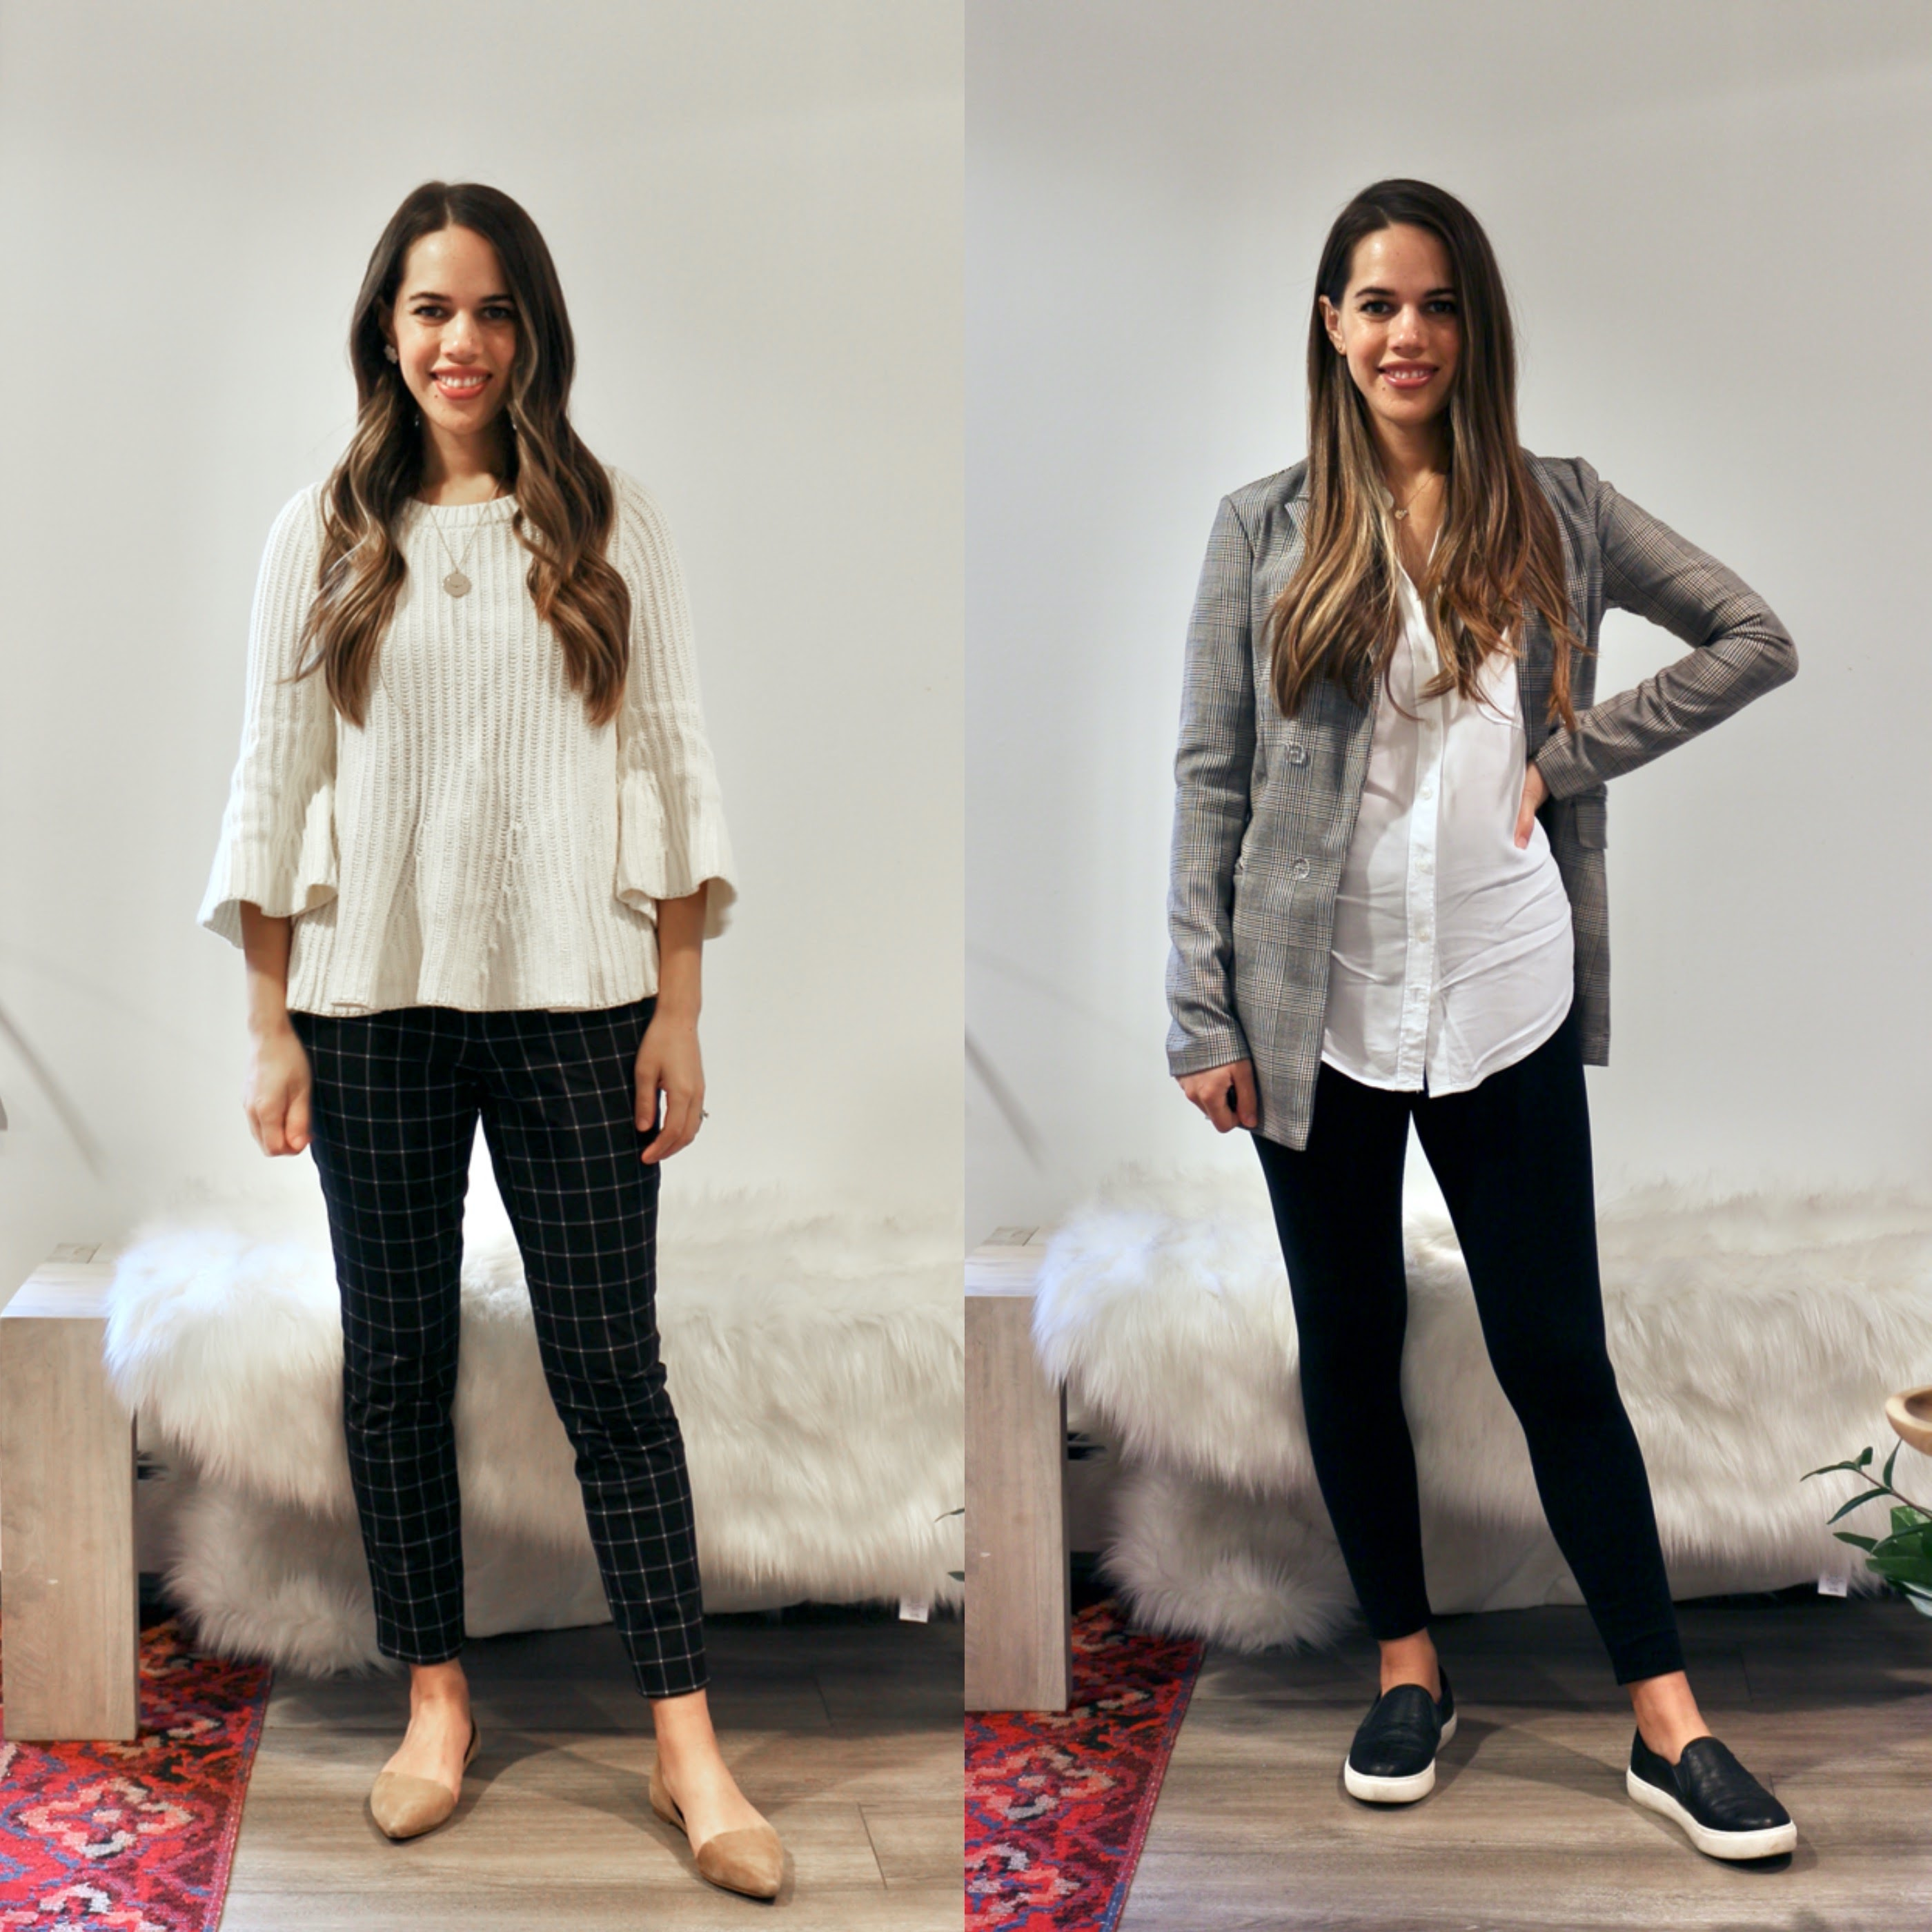 Jules in Flats - What I Wore to Work in October (Week 4)